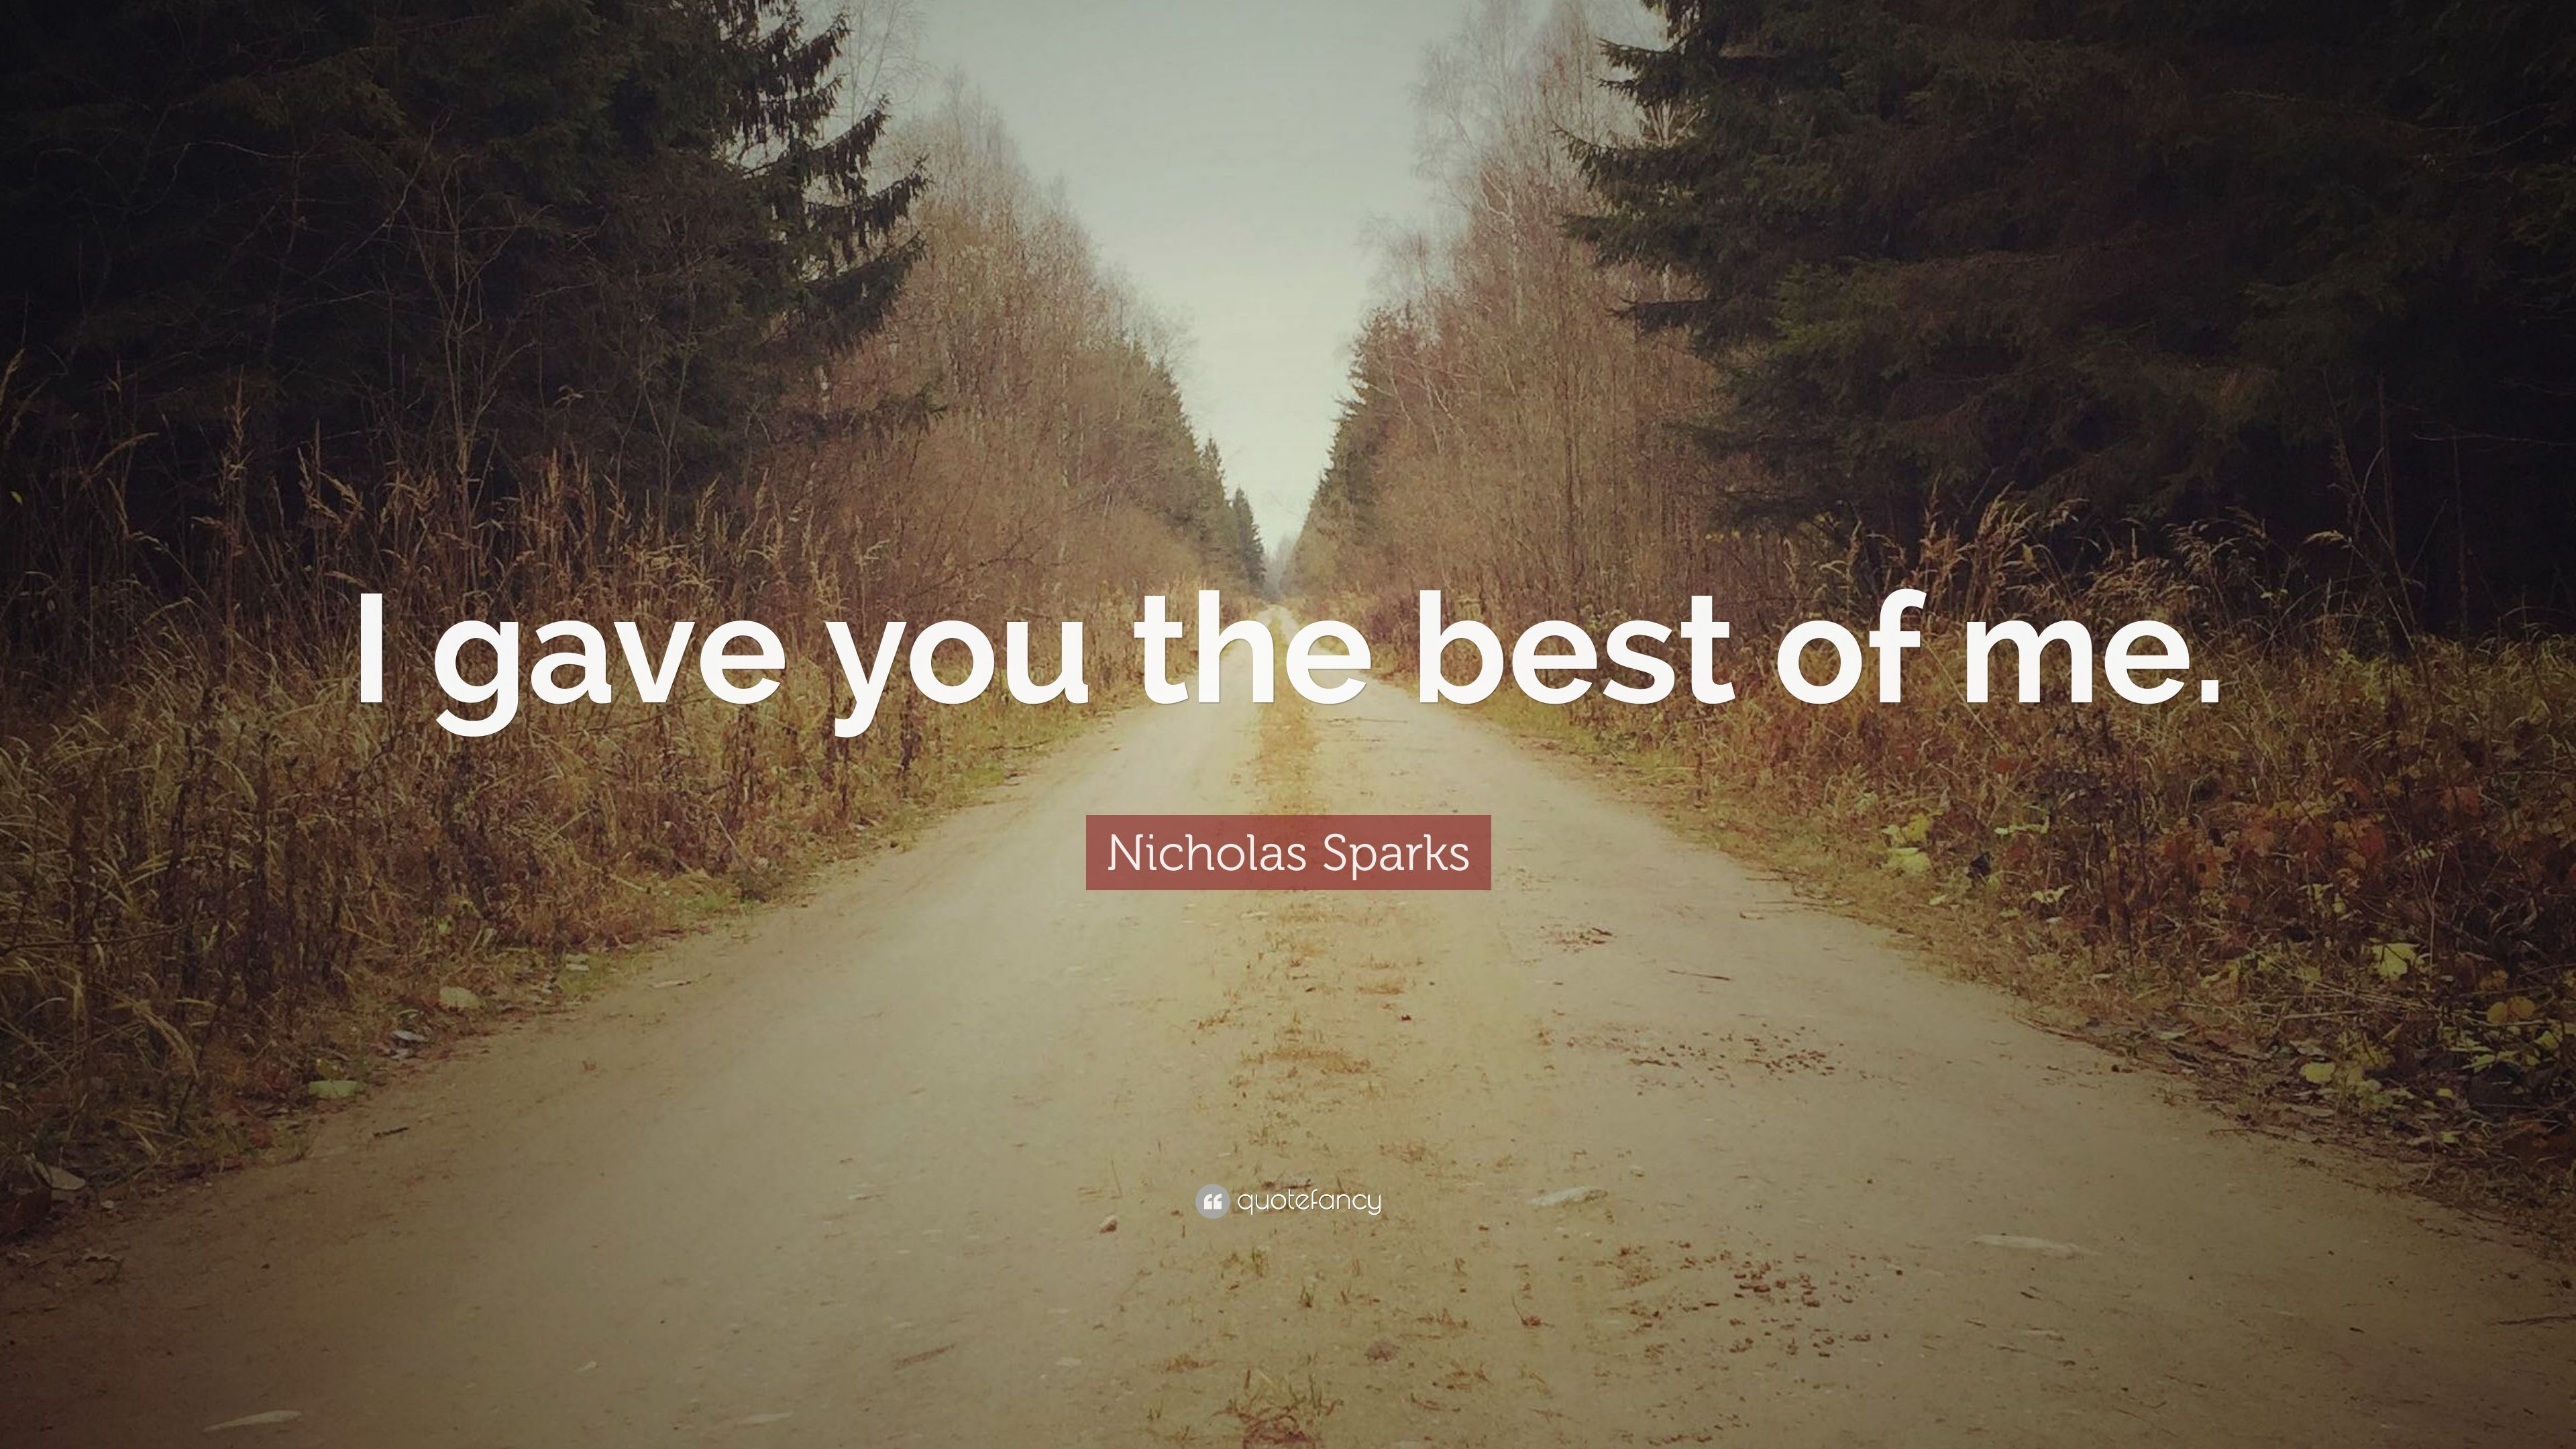 Nicholas Sparks Quote I Gave You The Best Of Me 7 Wallpapers